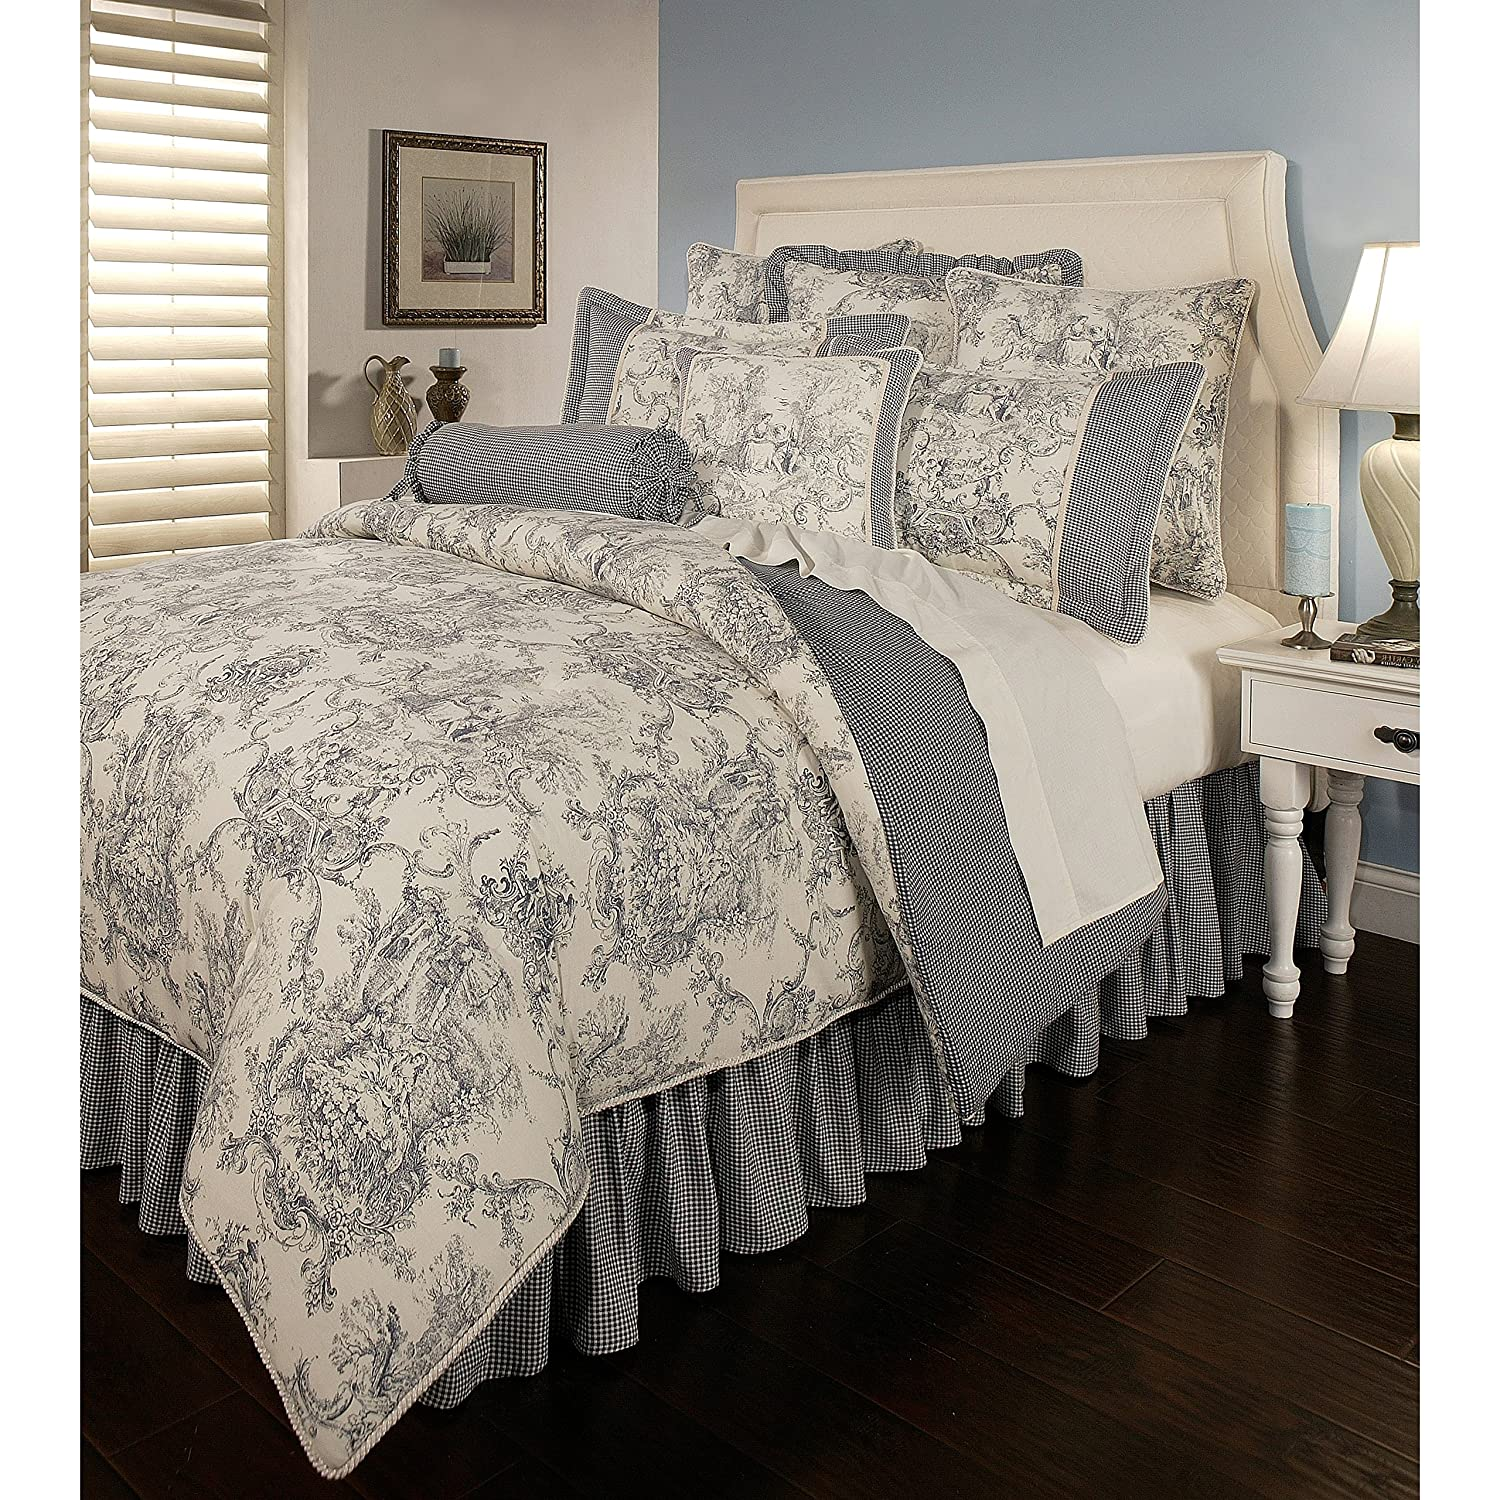 6 Piece Queen, Cottage Shabby Chic Classic Toile Pattern Comforter Set, Victorian French Country Check Design, Mid-Century Gingham Farmhouse Themed, Reversible Bedding, Adorable Blue, Taupe Color